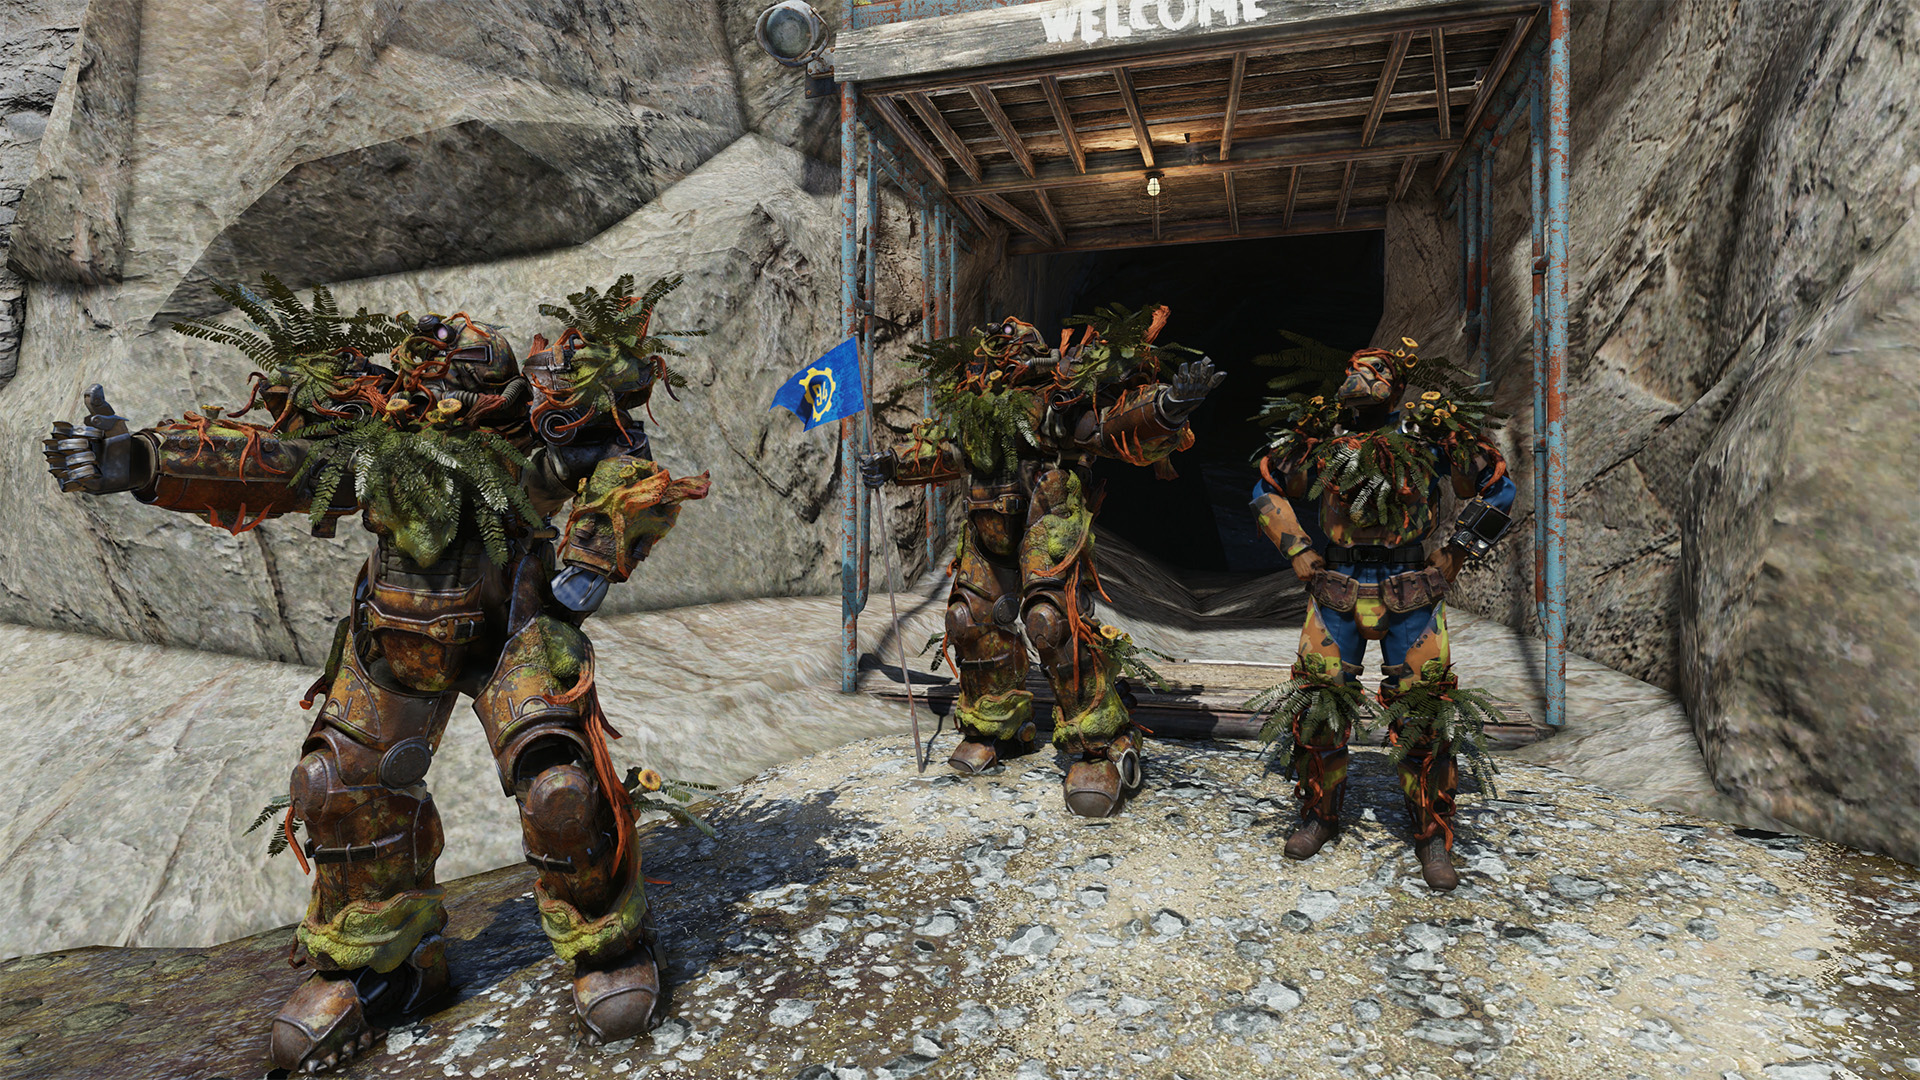 Fallout 76 - three players, wearing end game Vault gear, pose outside Vault 94 and give the thumbs up.